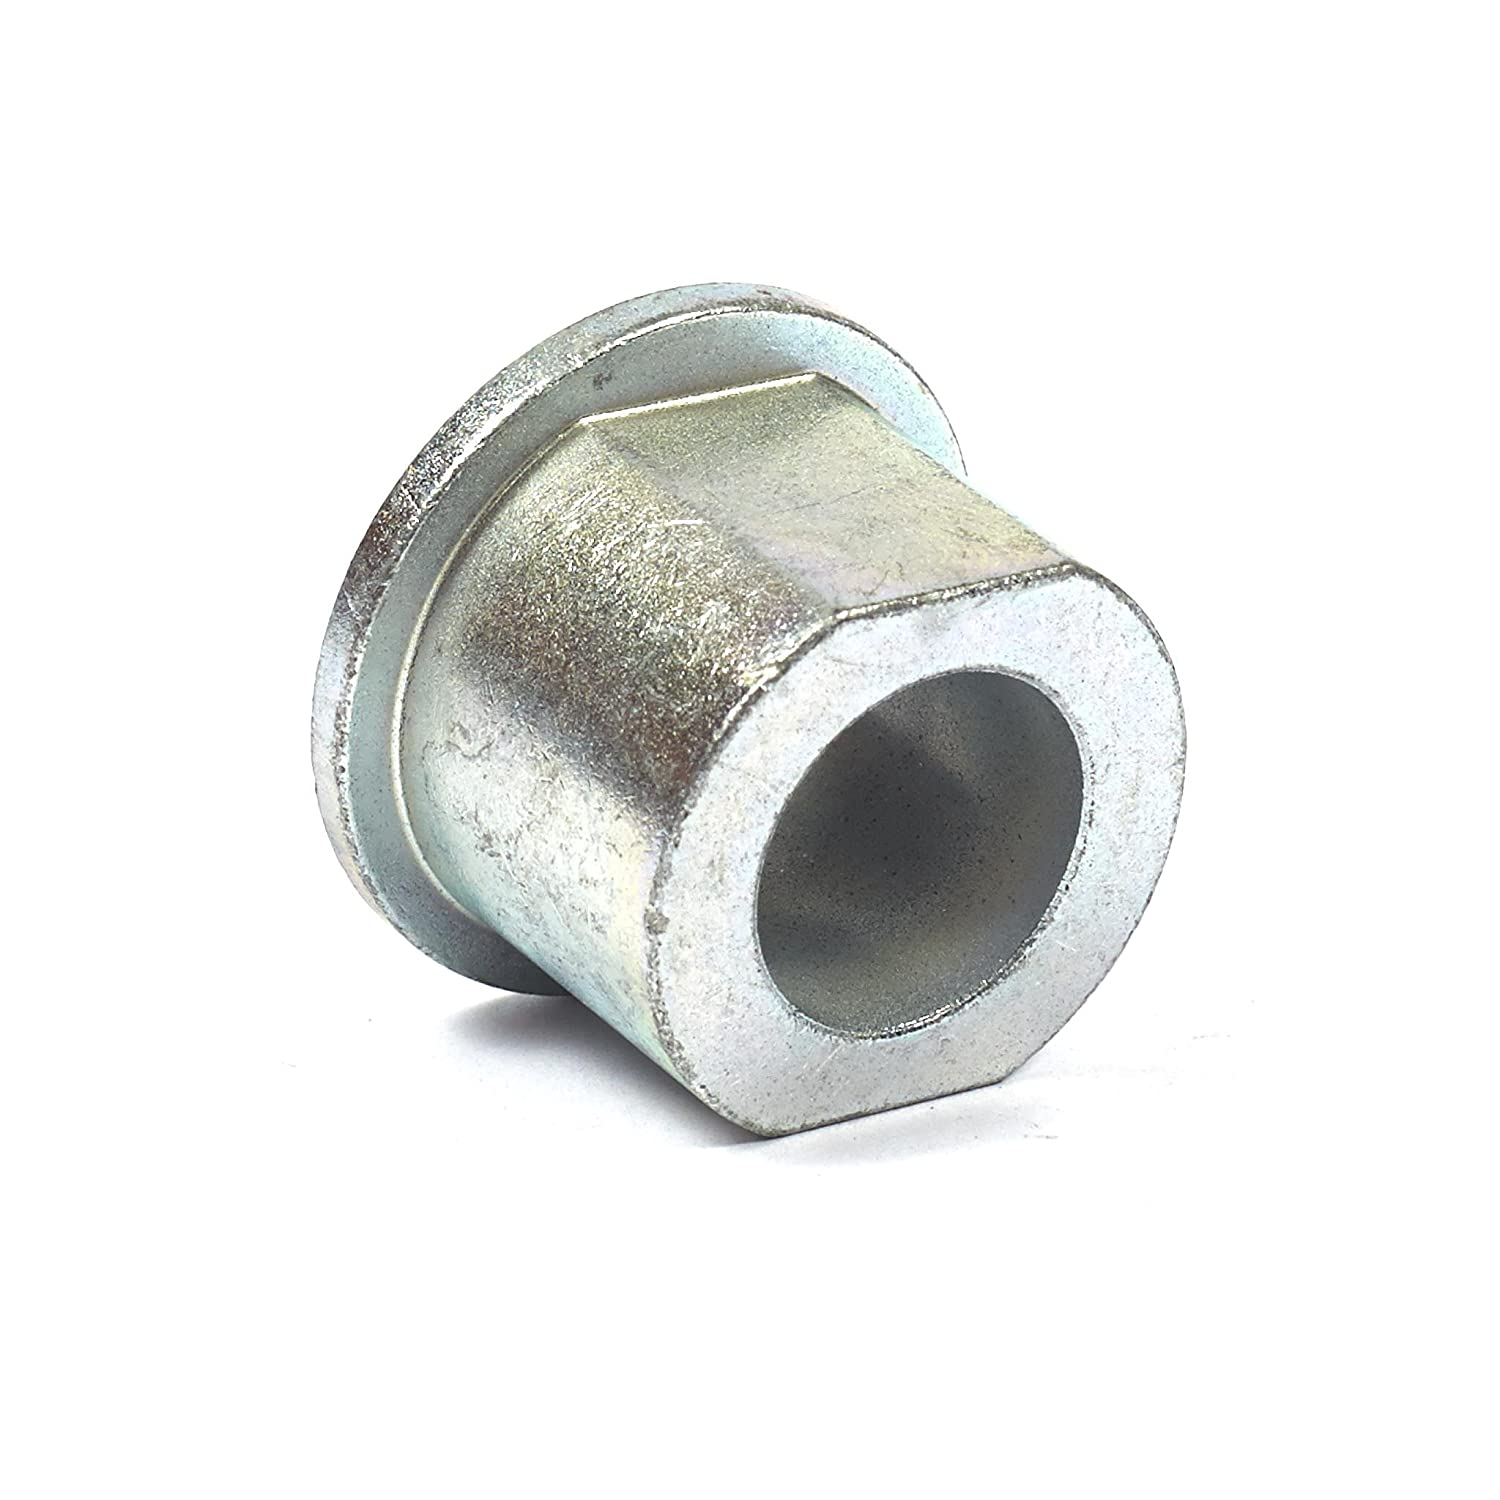 Briggs and Stratton 1666001SM Bushing, 1' Long